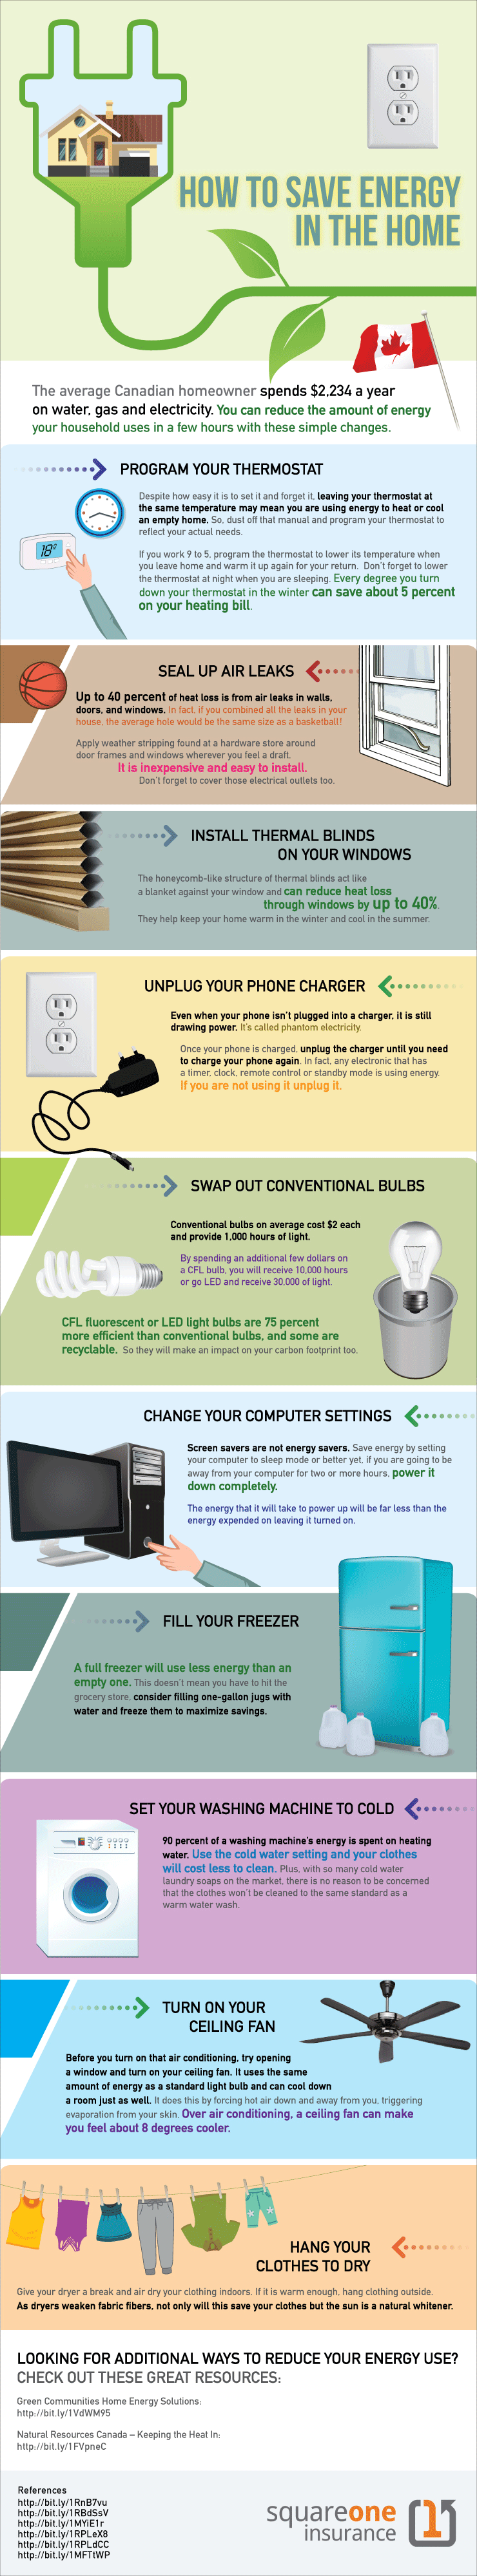 how-to-save-energy-in-the-home